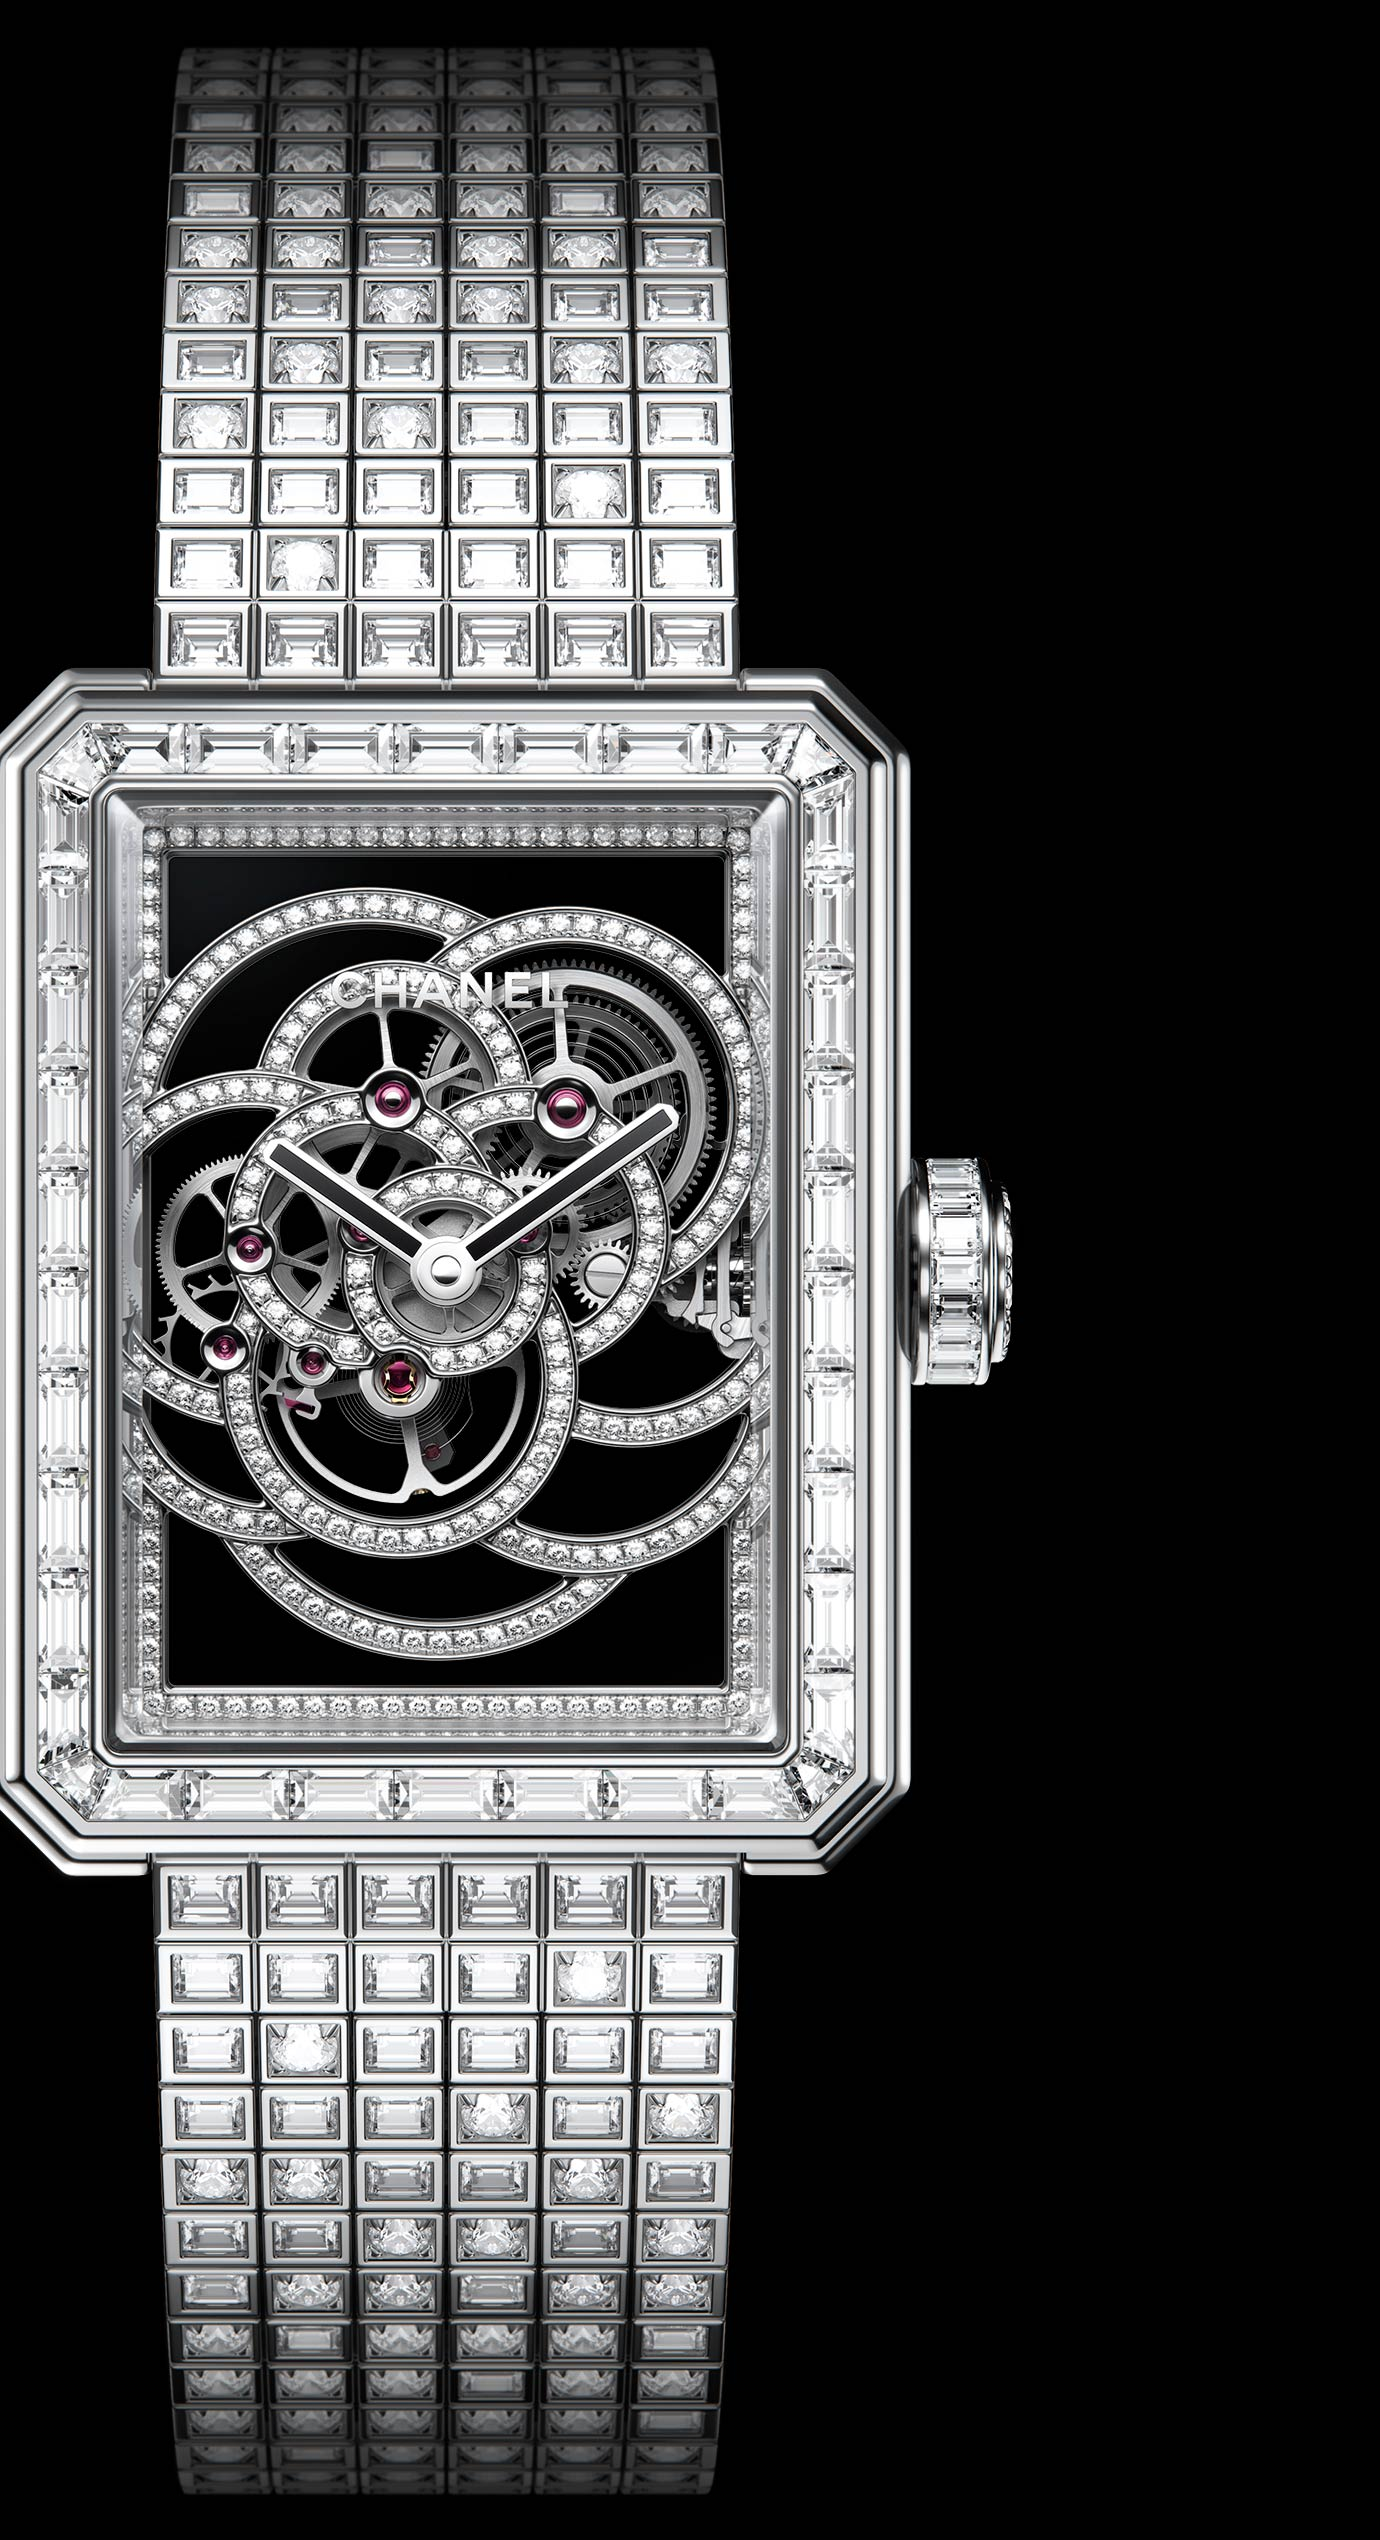 Première Camélia Skeleton watch in white gold, case, bezel, hands, crown and buckle set with diamonds - Enlarged view